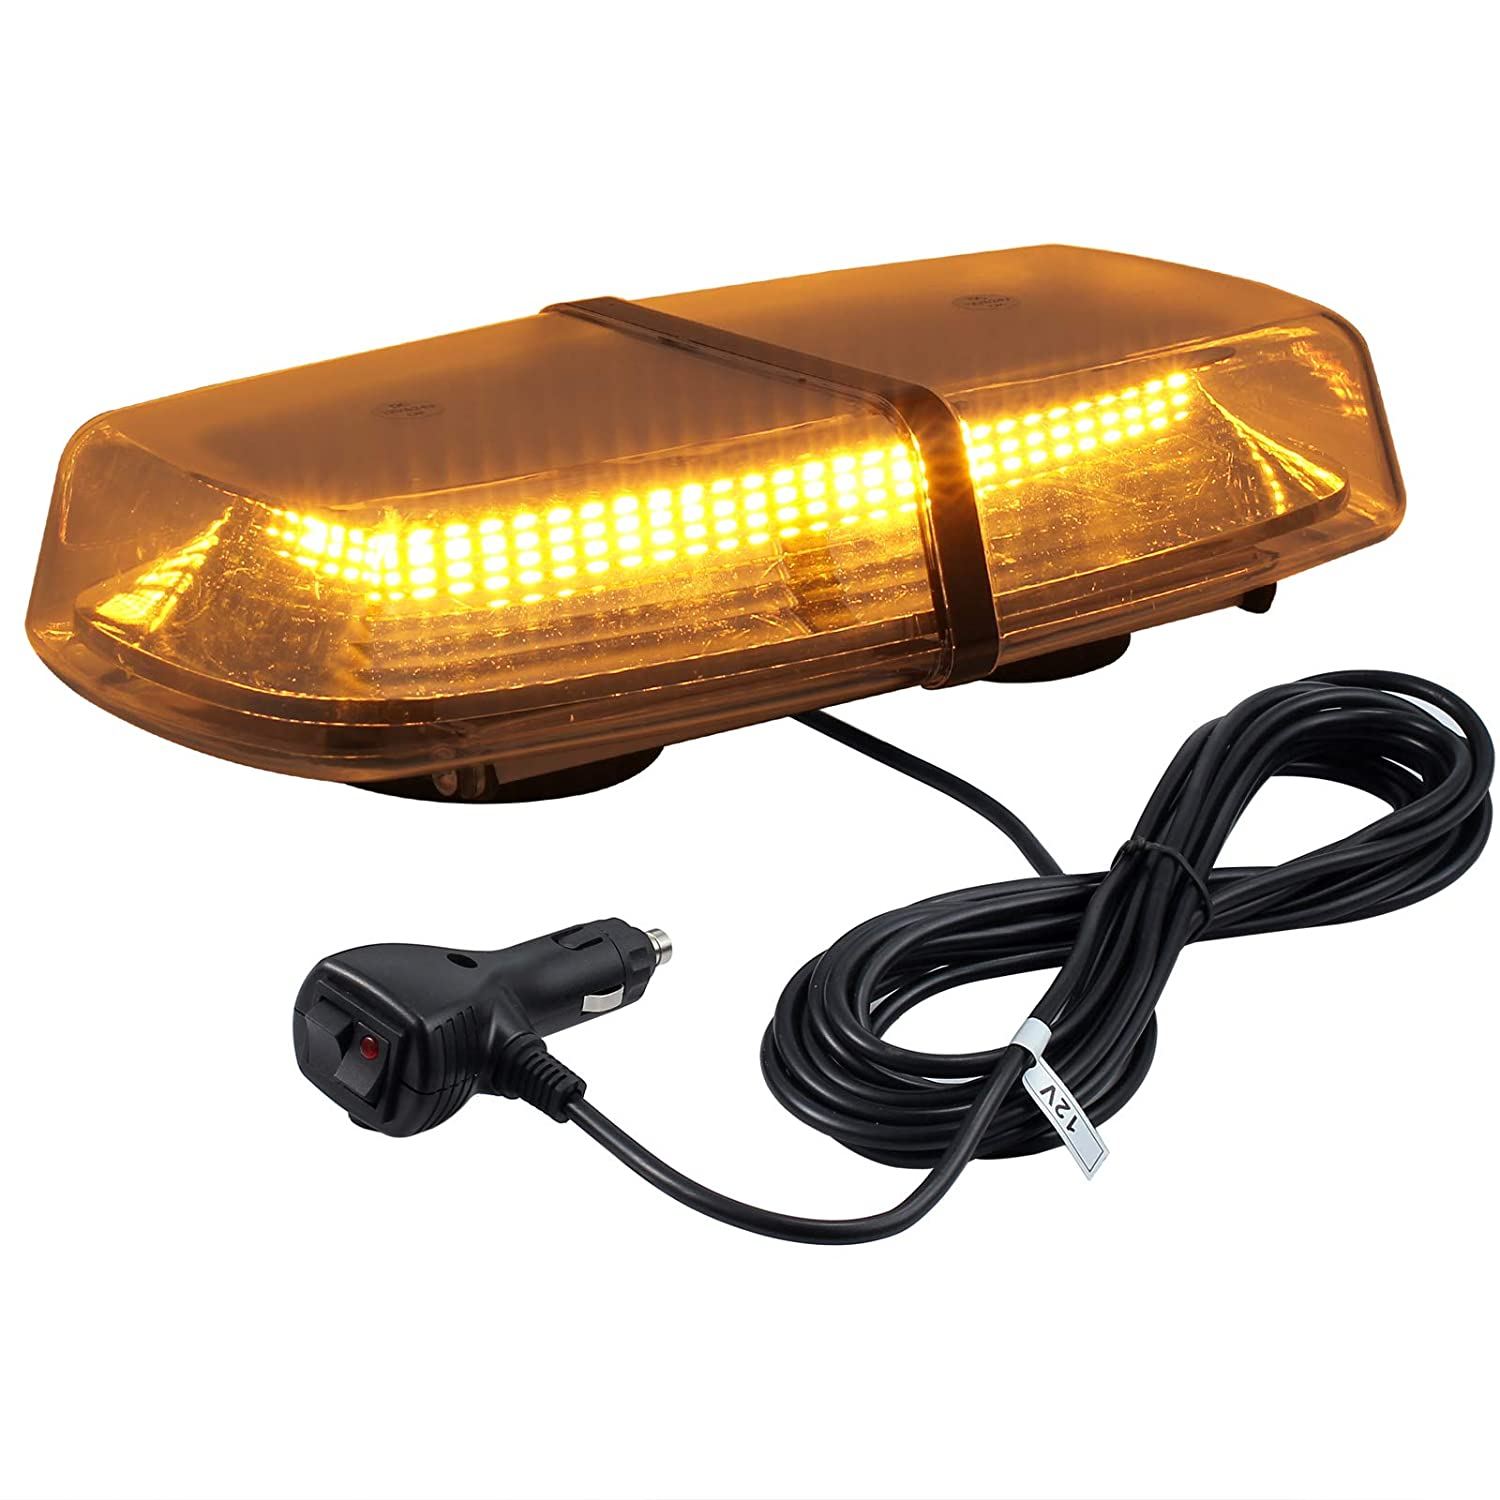 Justech Strobe Lights Flashing Beacon 240 LED Warning Lights Car Emergency Warning Roof Lights Recovery Lights Amber Beacon Van Roof Bar 12V for Van Car Truck Trailer RV Caravan - with Magnetic Base